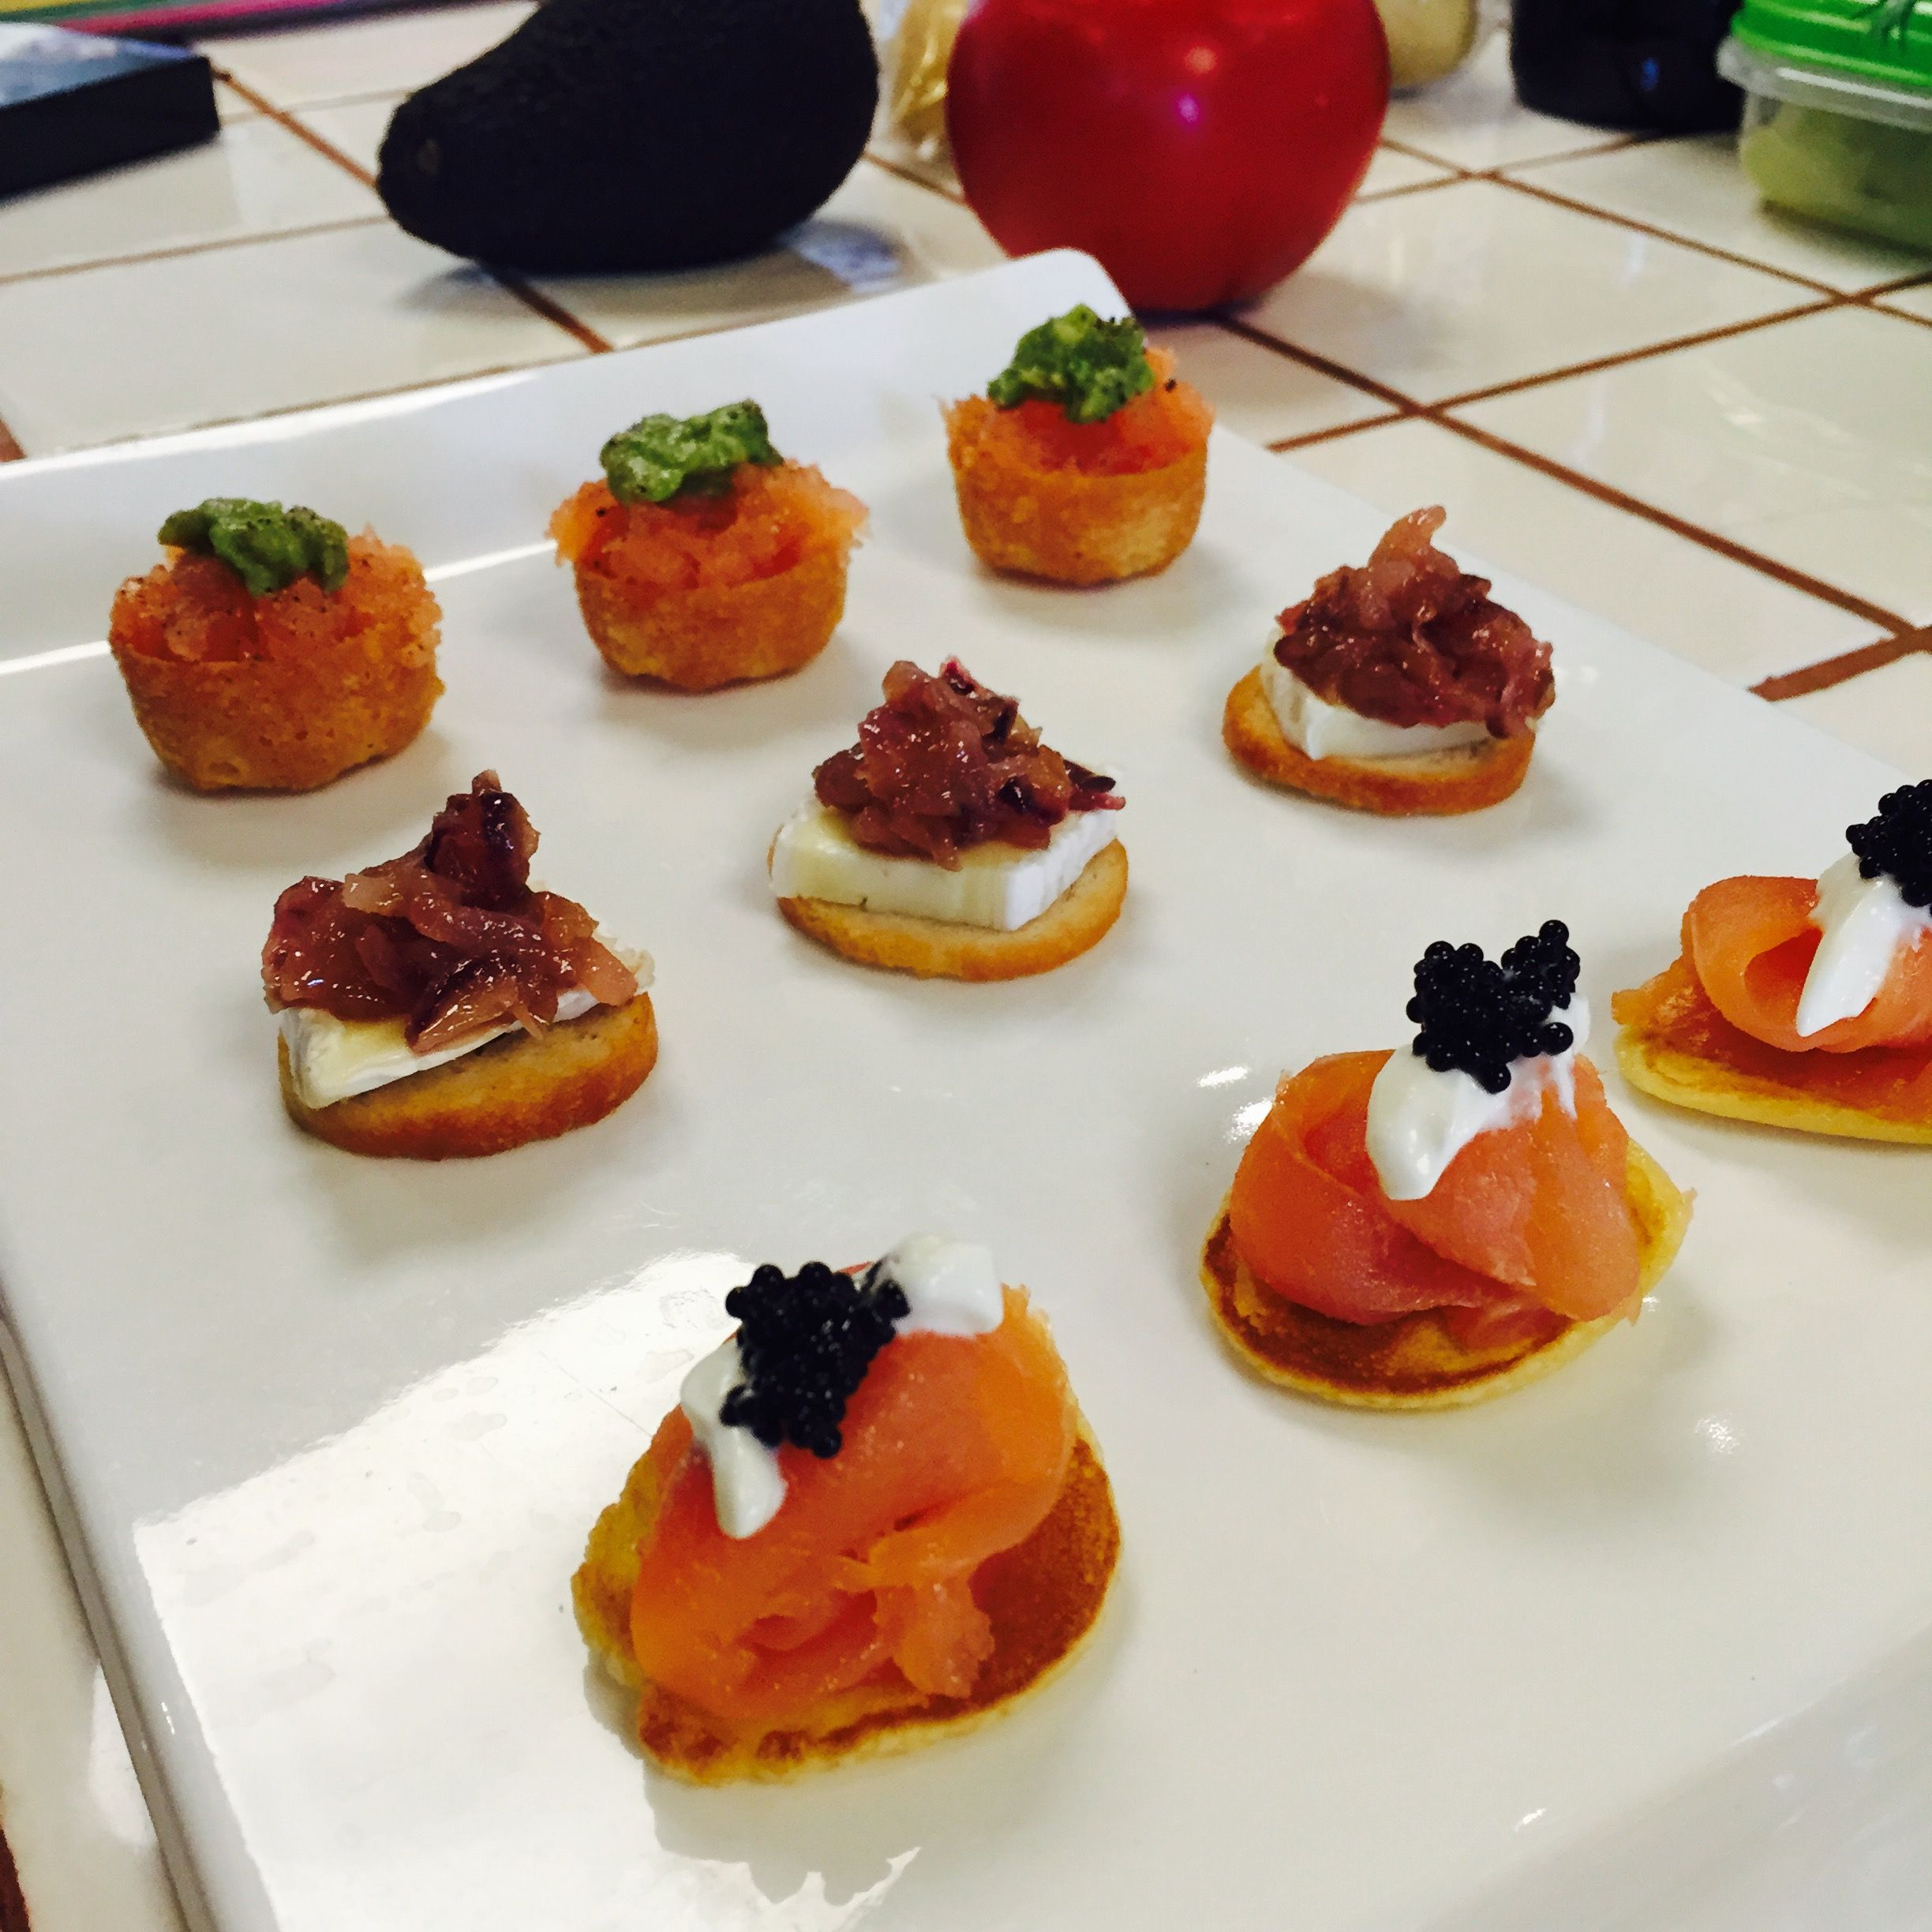 Blinis with Smoked Salmon, Creme Fraiche & Caviar, Camembert Crostini with Sweet Onions (V) Salmon Tartar with Avocado #Catering #Marbella #Spain #Sotogrande #Gibraltar